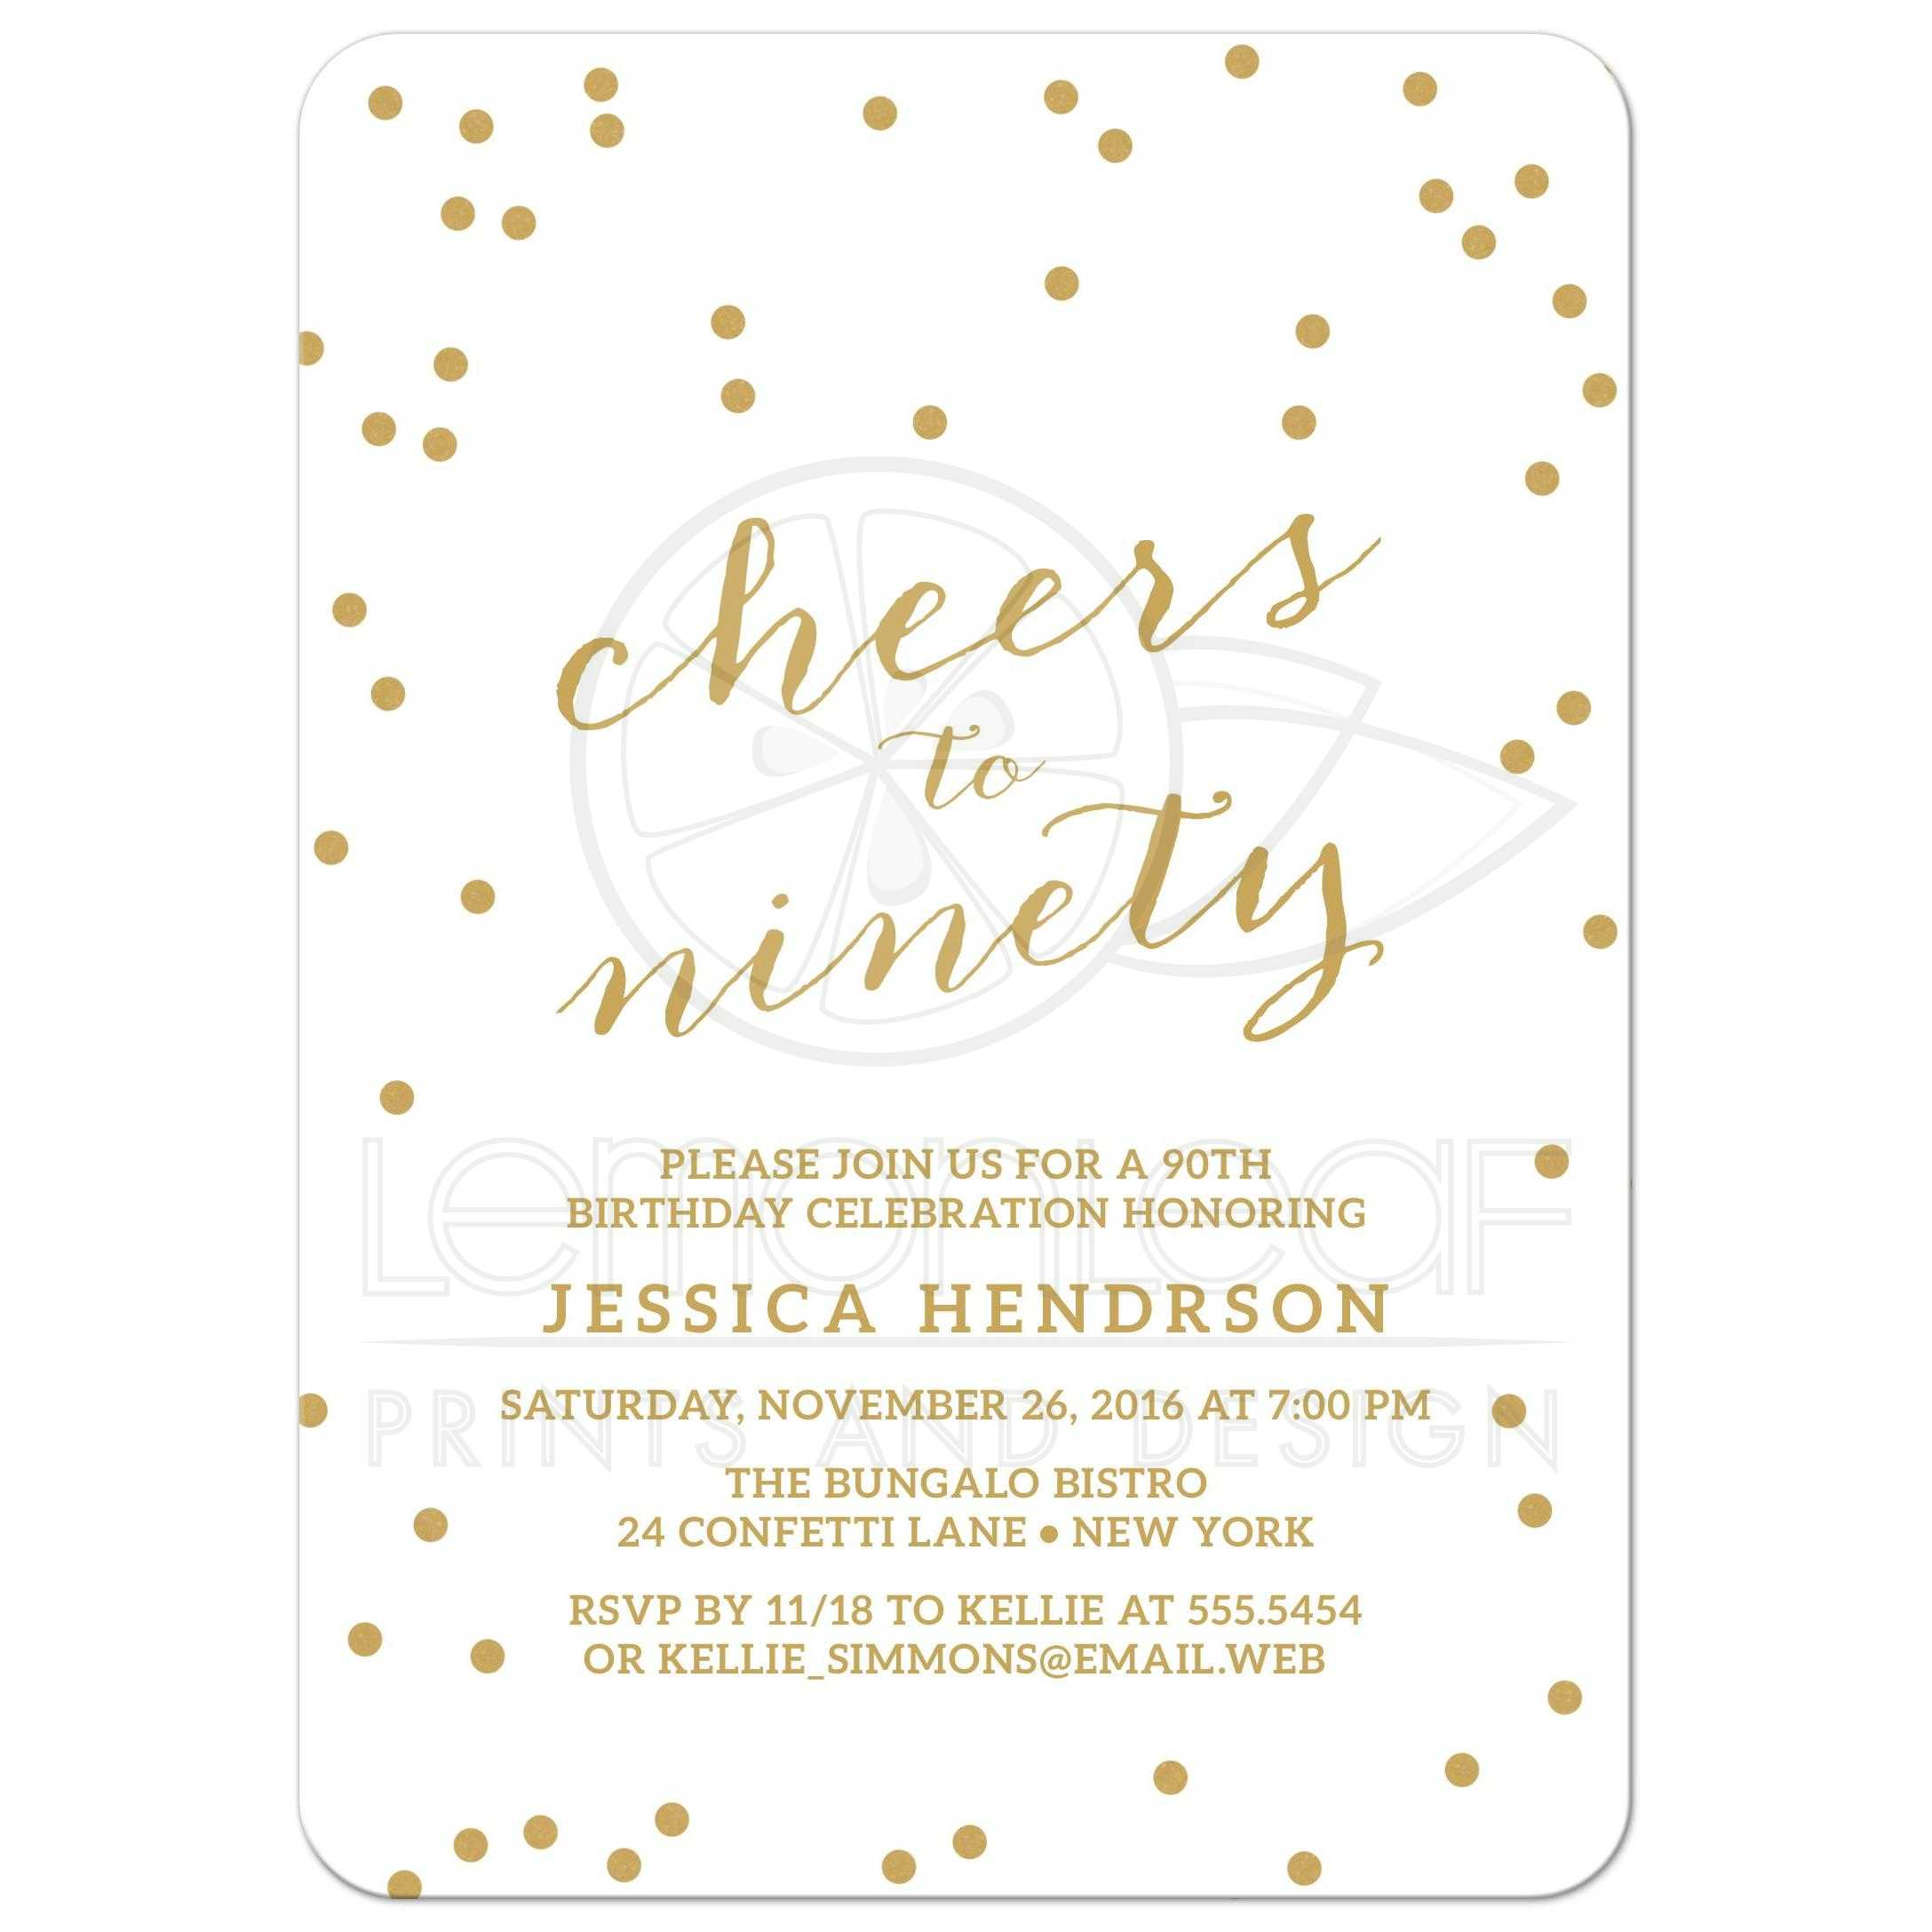 90th Birthday Party Invitations - Gold Confetti Cheers to Ninety